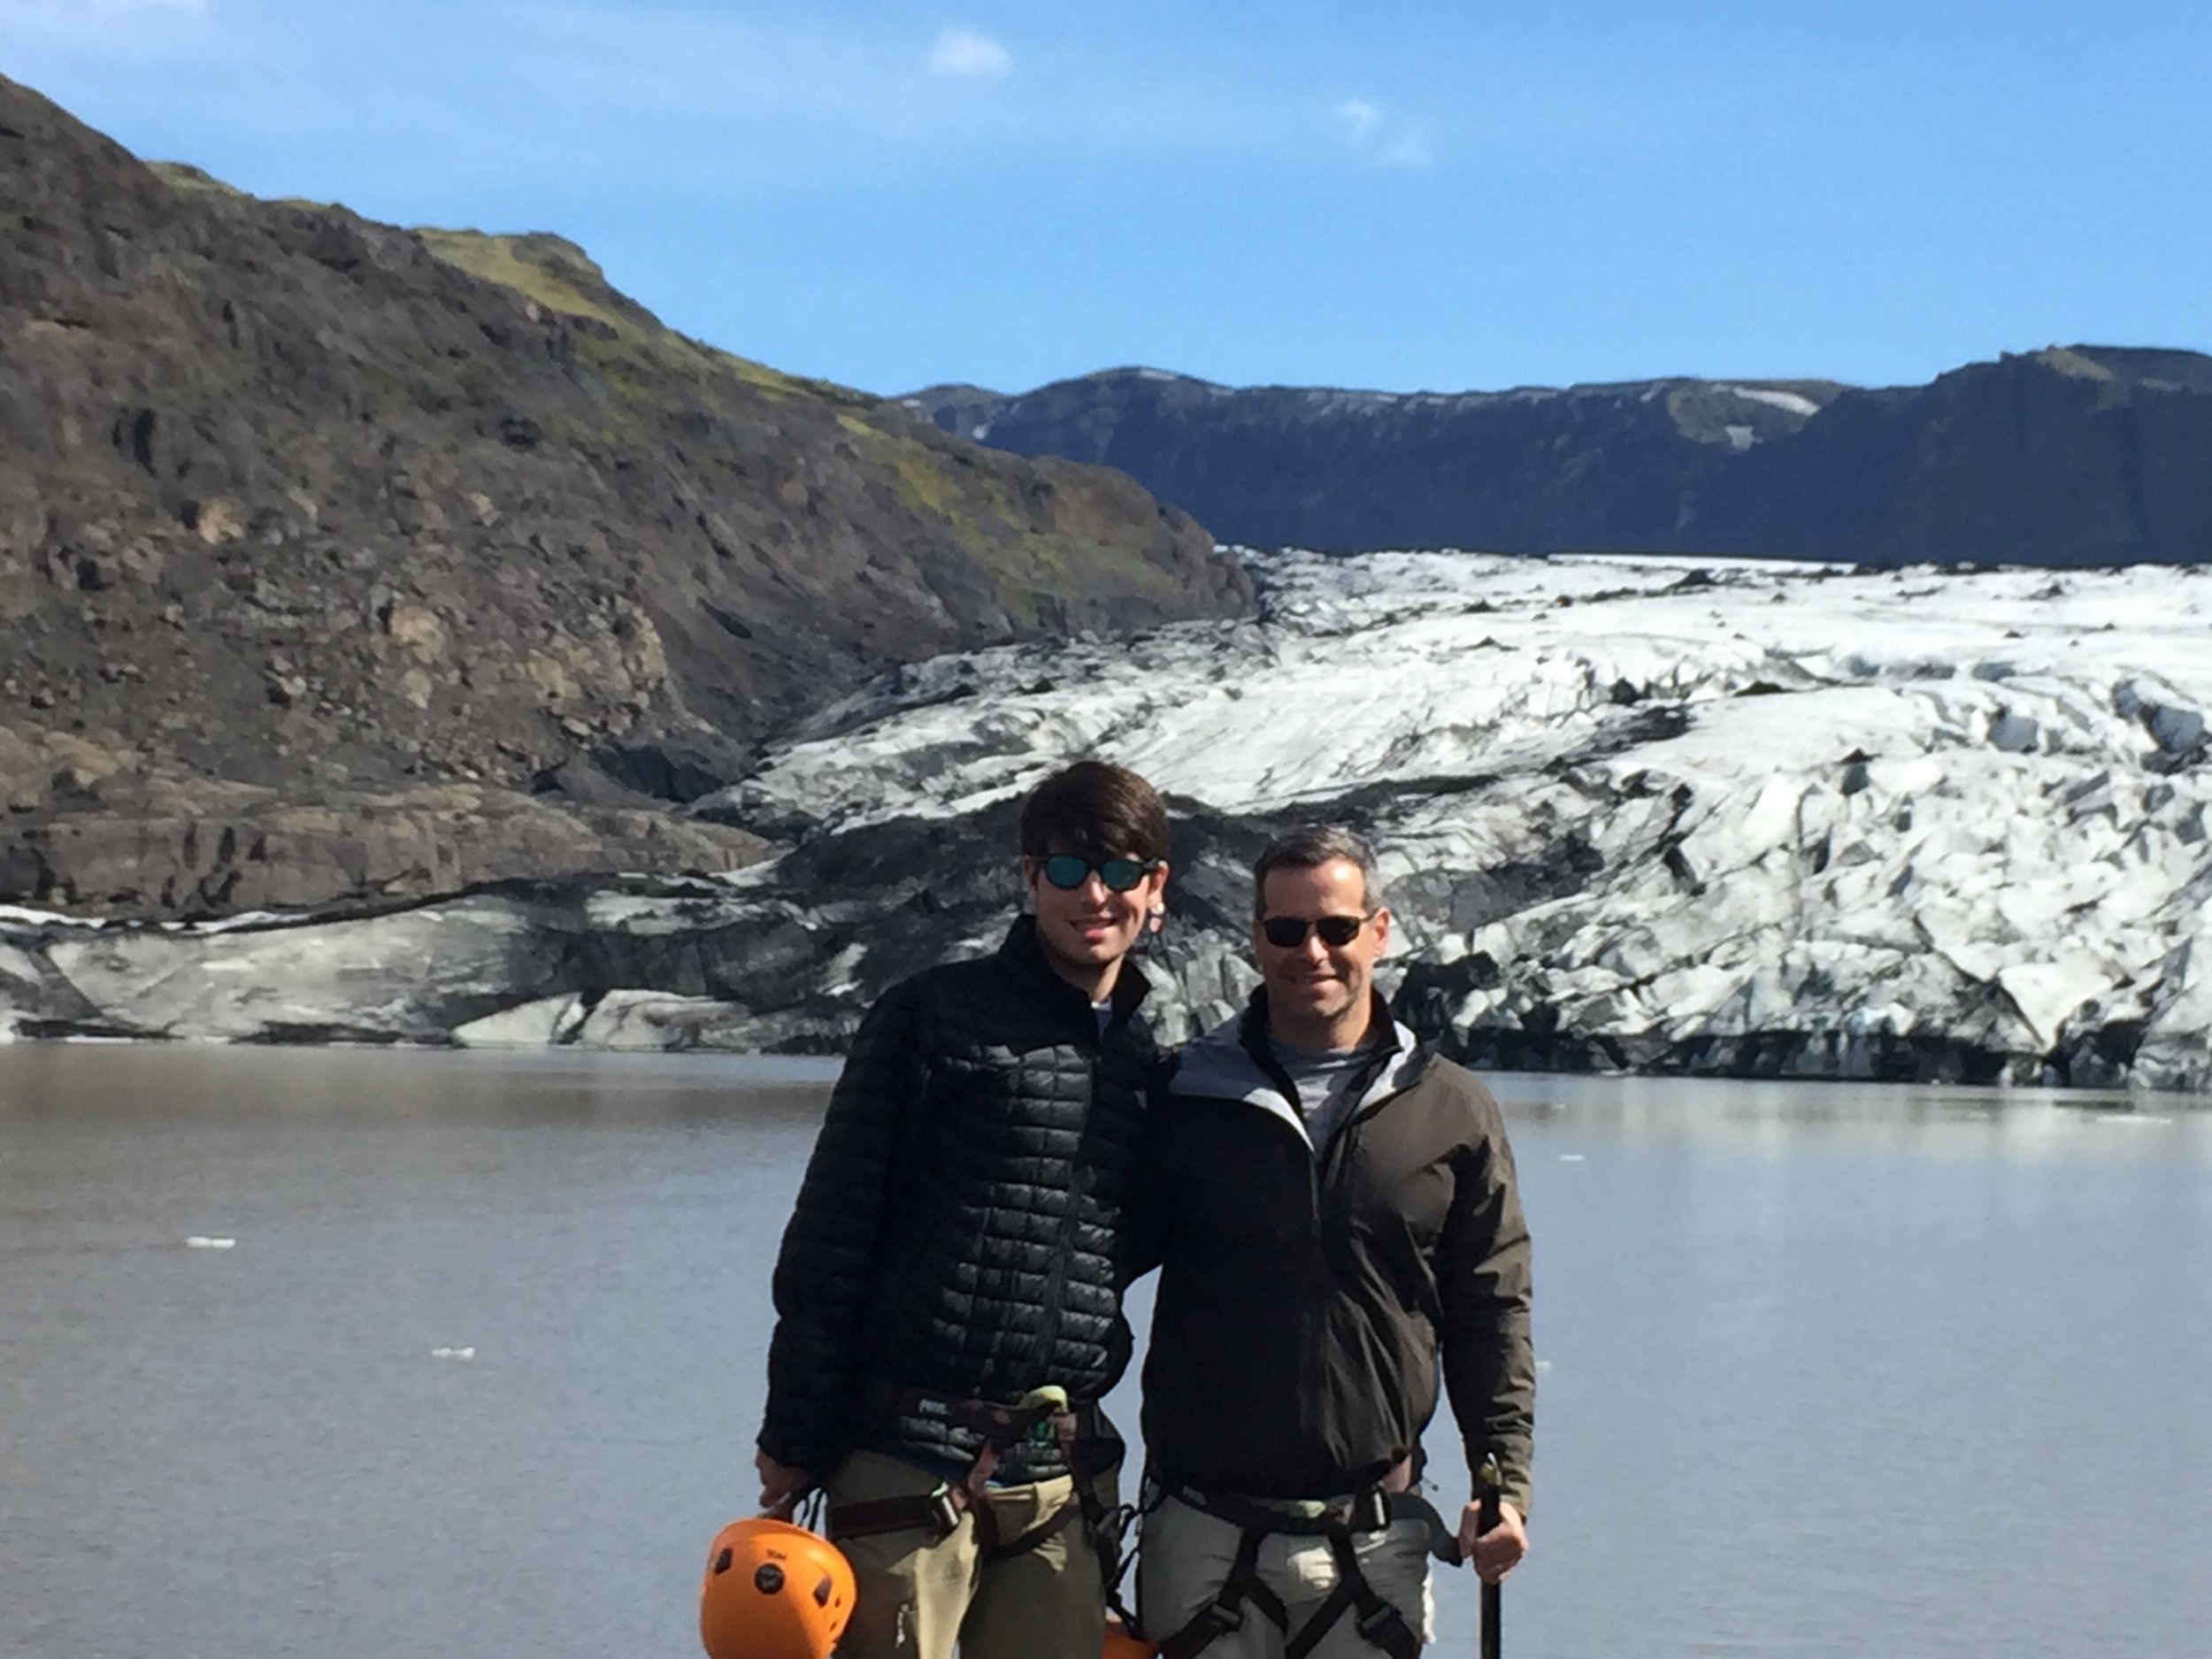 Noel and Ethan Strauss in Iceland.